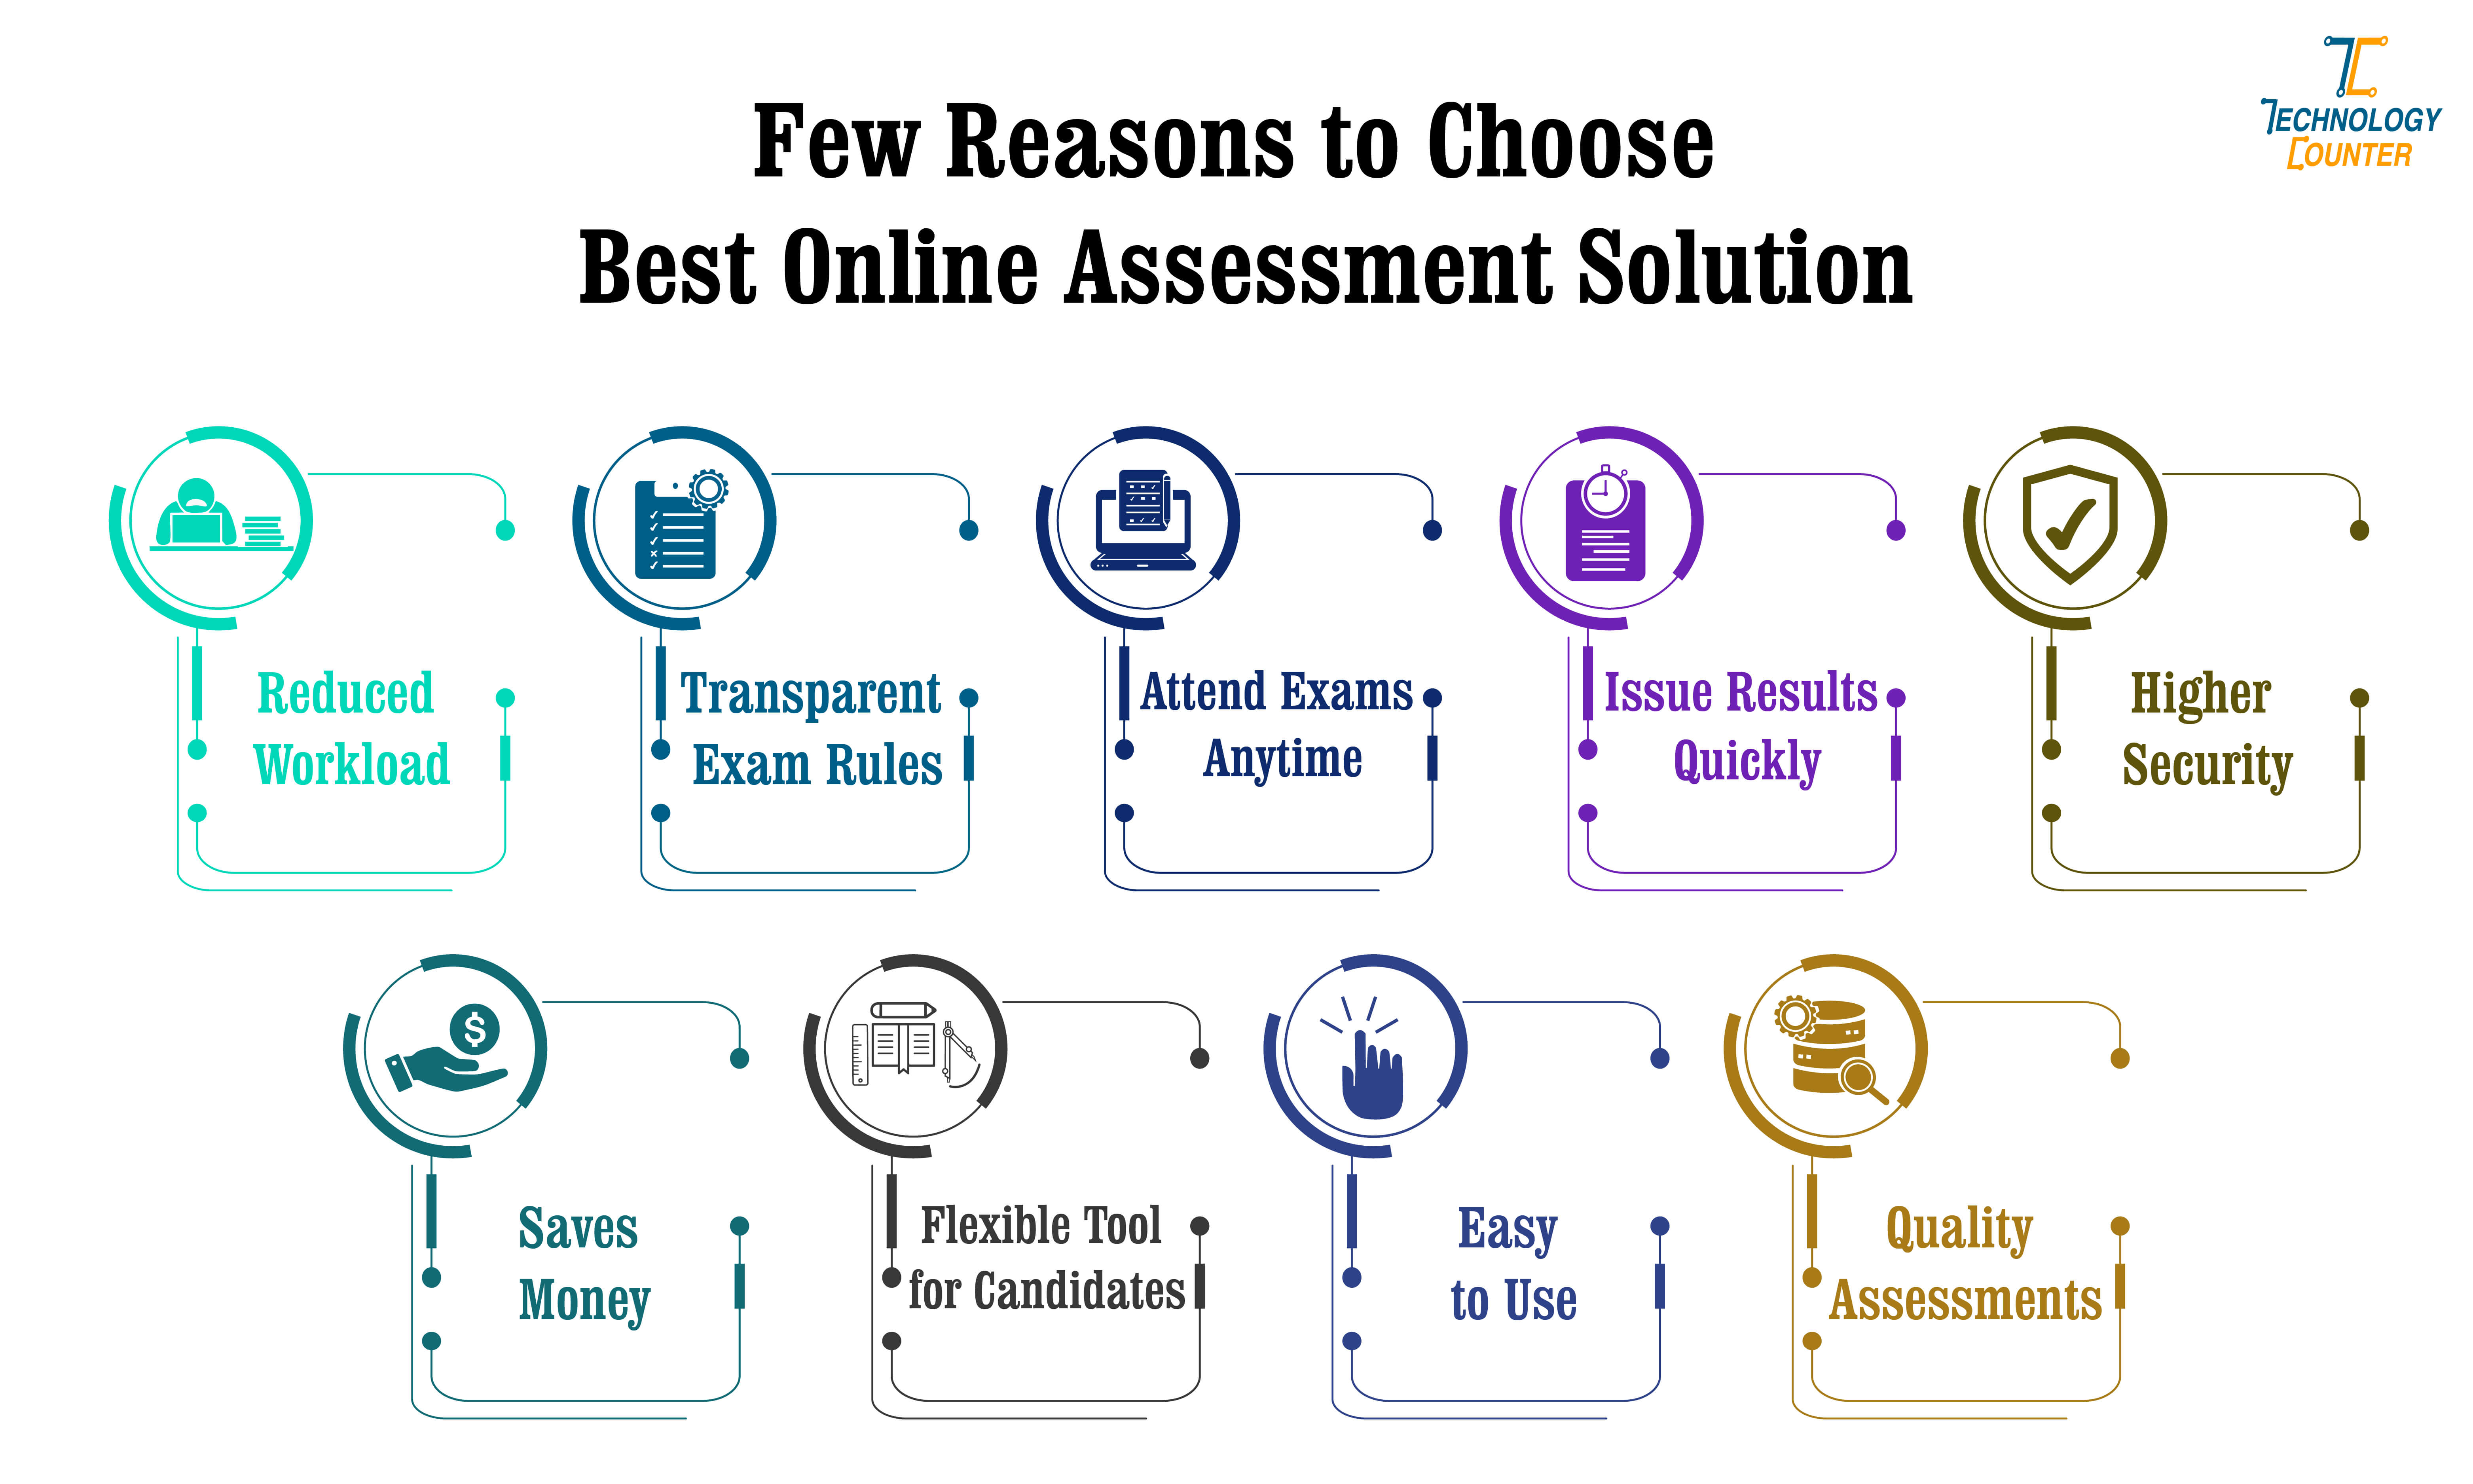 Few Reasons to Choose Best Online Assessment Solution